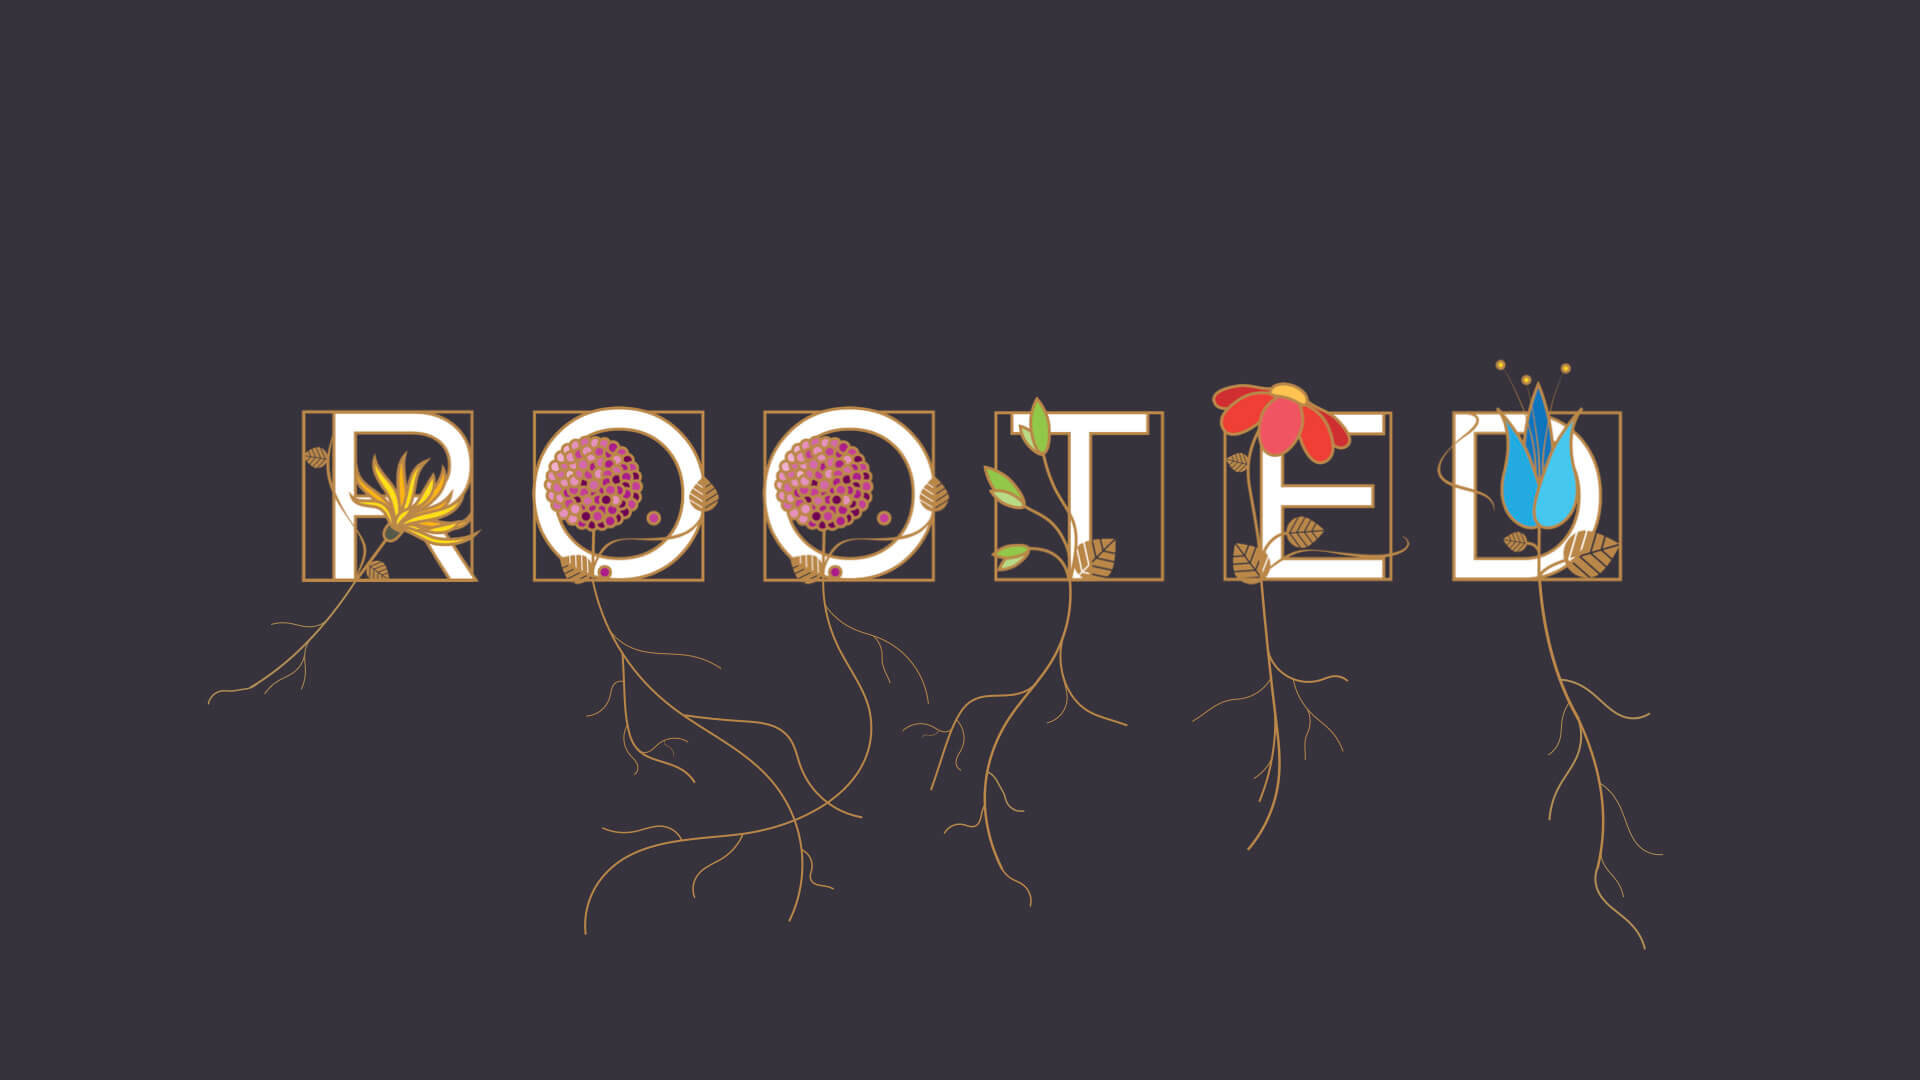 No one survives for long without roots.